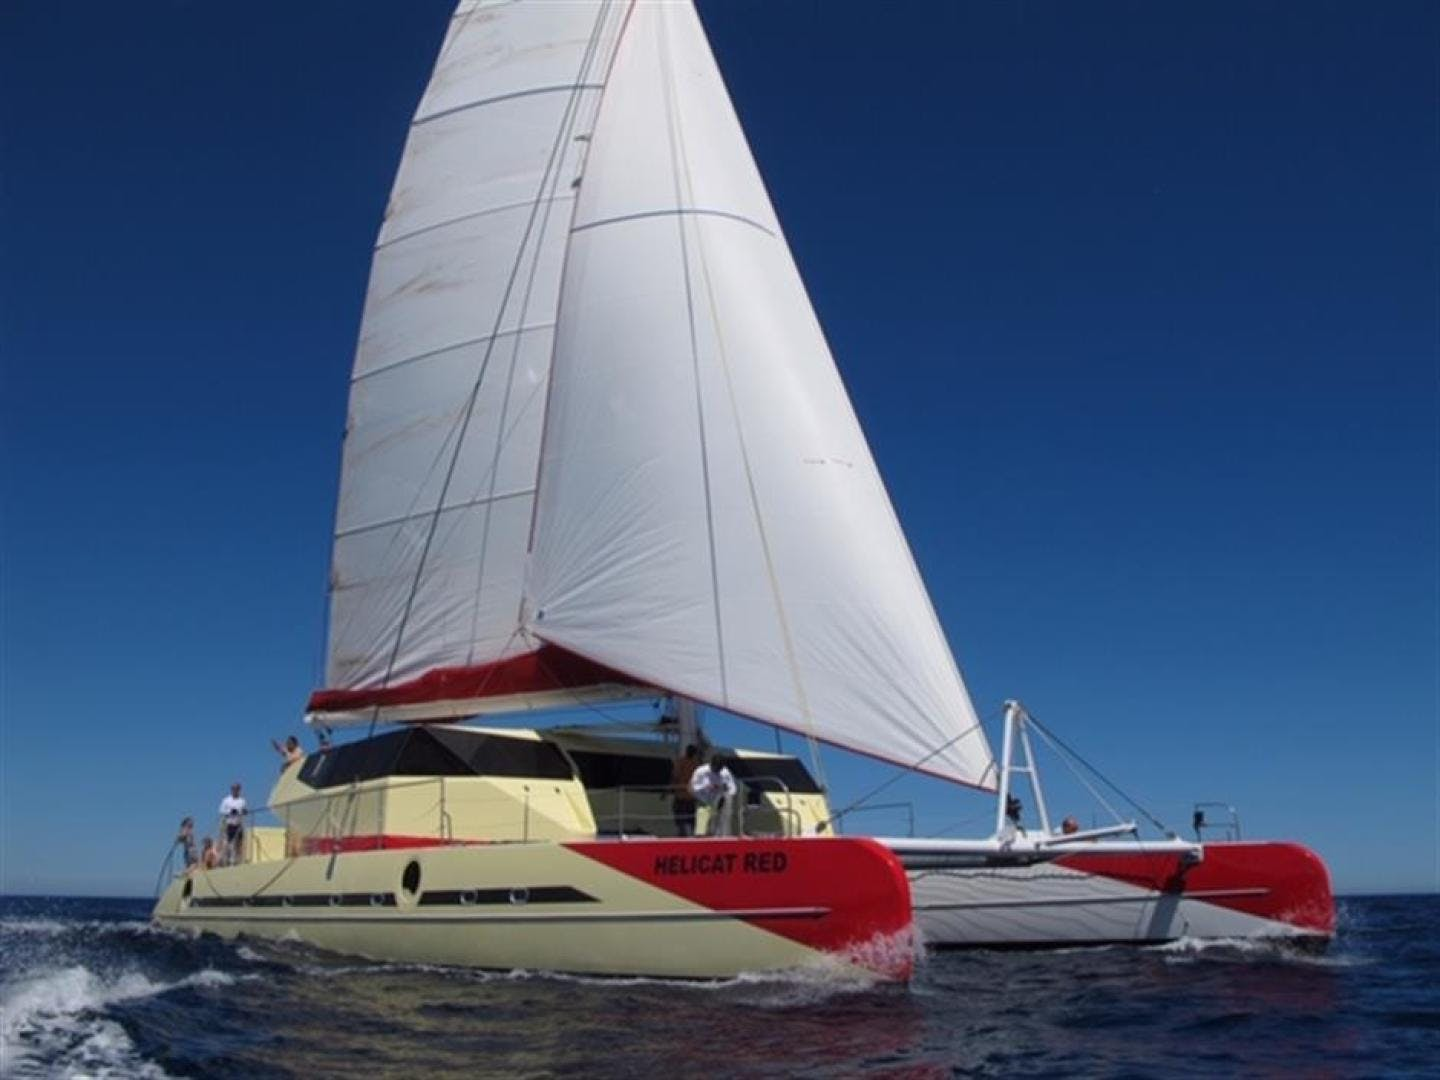 2010 Fountaine Pajot 77' Catamaran Helicat Red | Picture 1 of 48